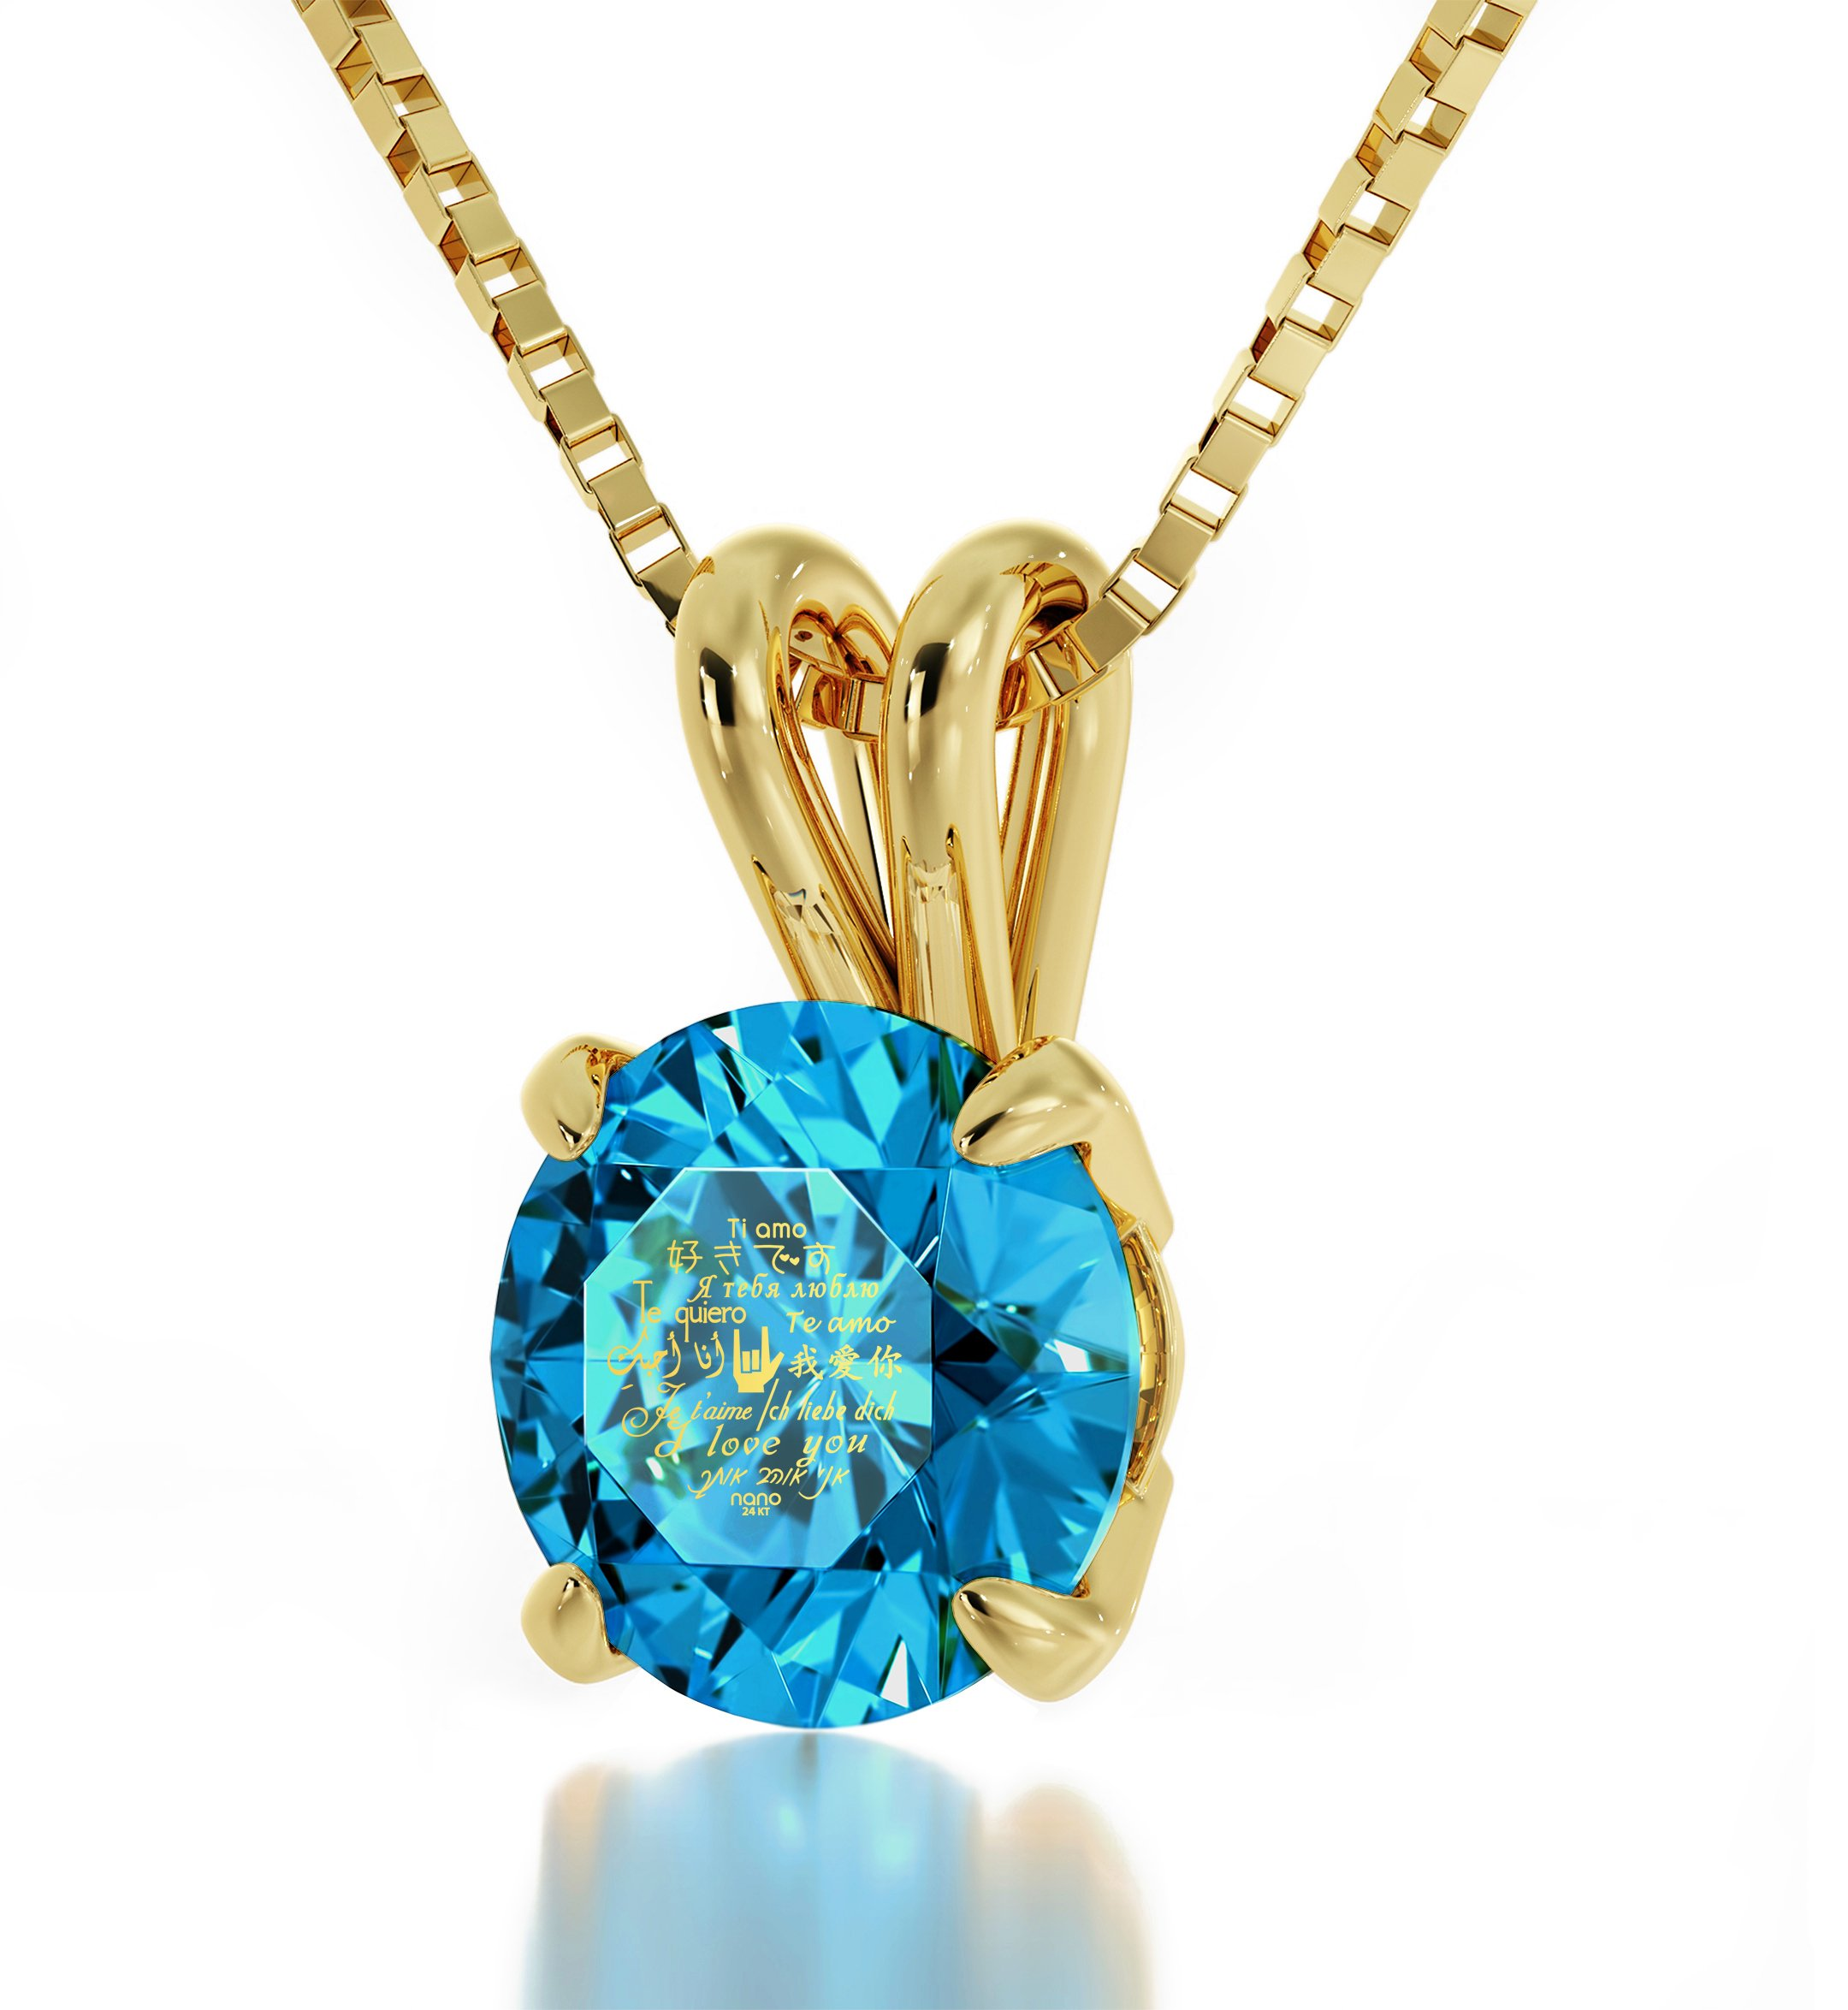 14k Yellow Gold I Love You Necklace Solitaire Pendant Inscribed in 24k Gold Blue Crystal, 18'' Gold Filled